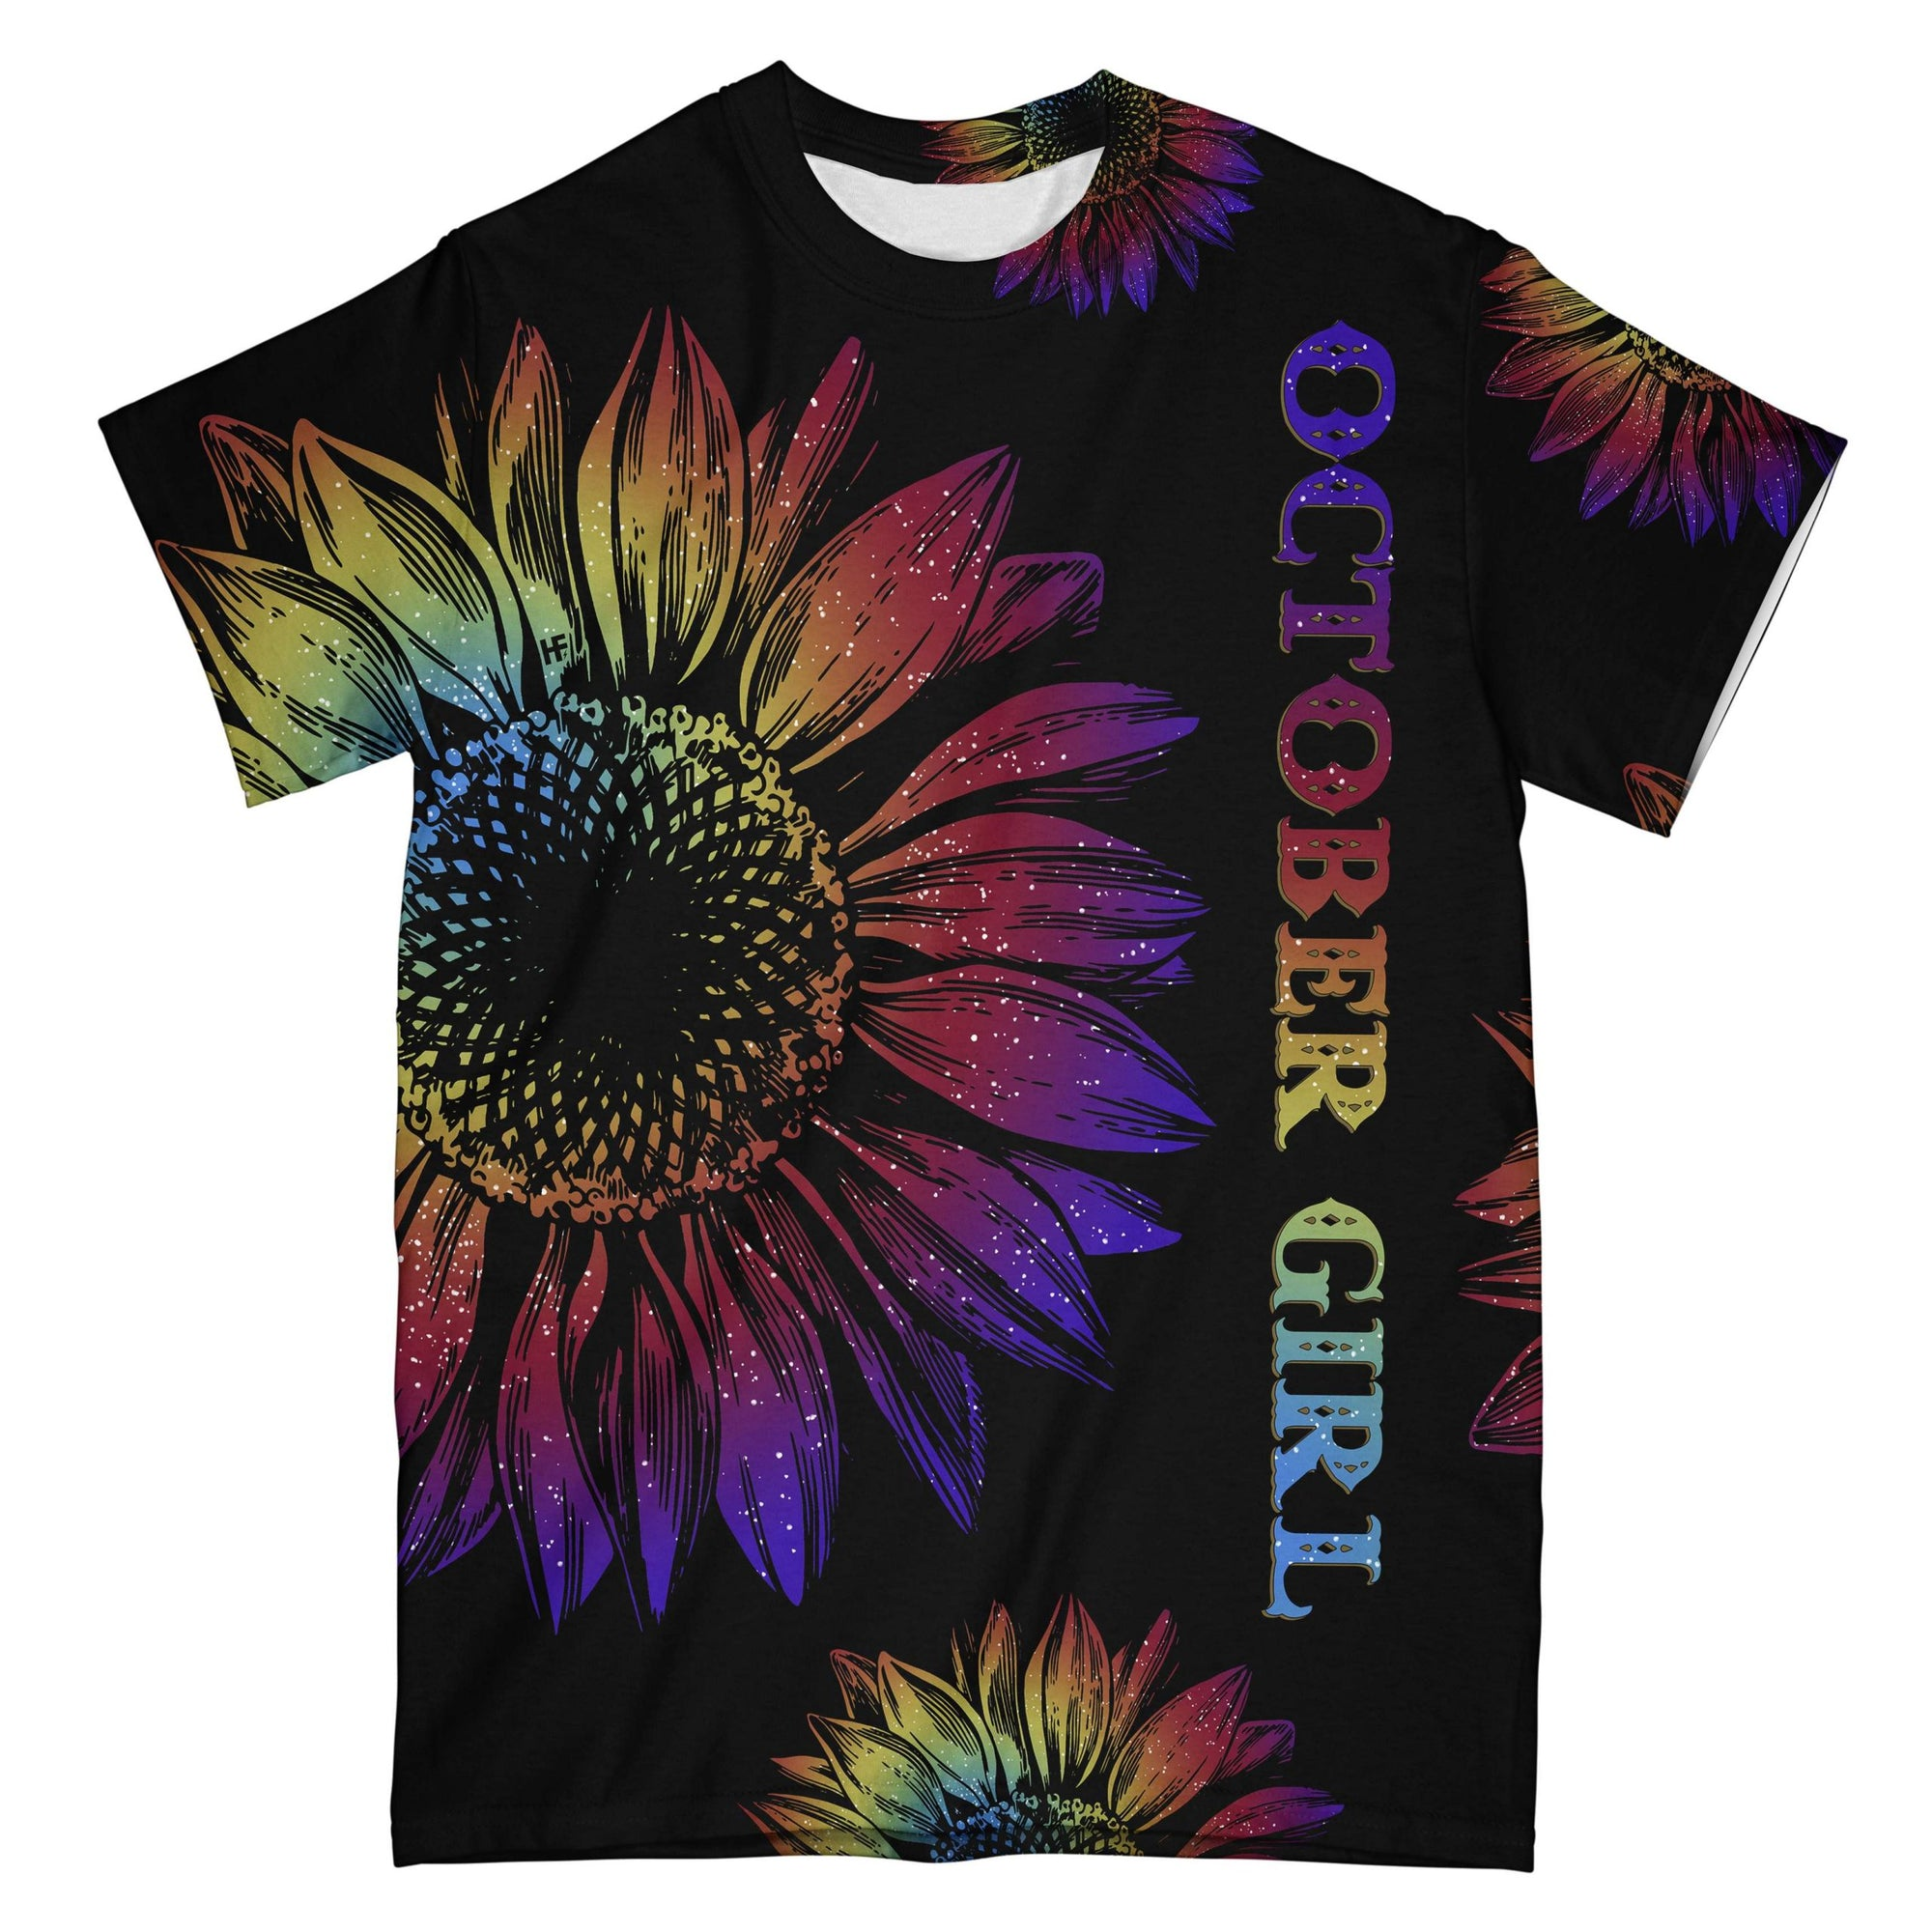 October Girl Tie Dye Sunflower EZ08 2608 All Over T-shirt - Hyperfavor